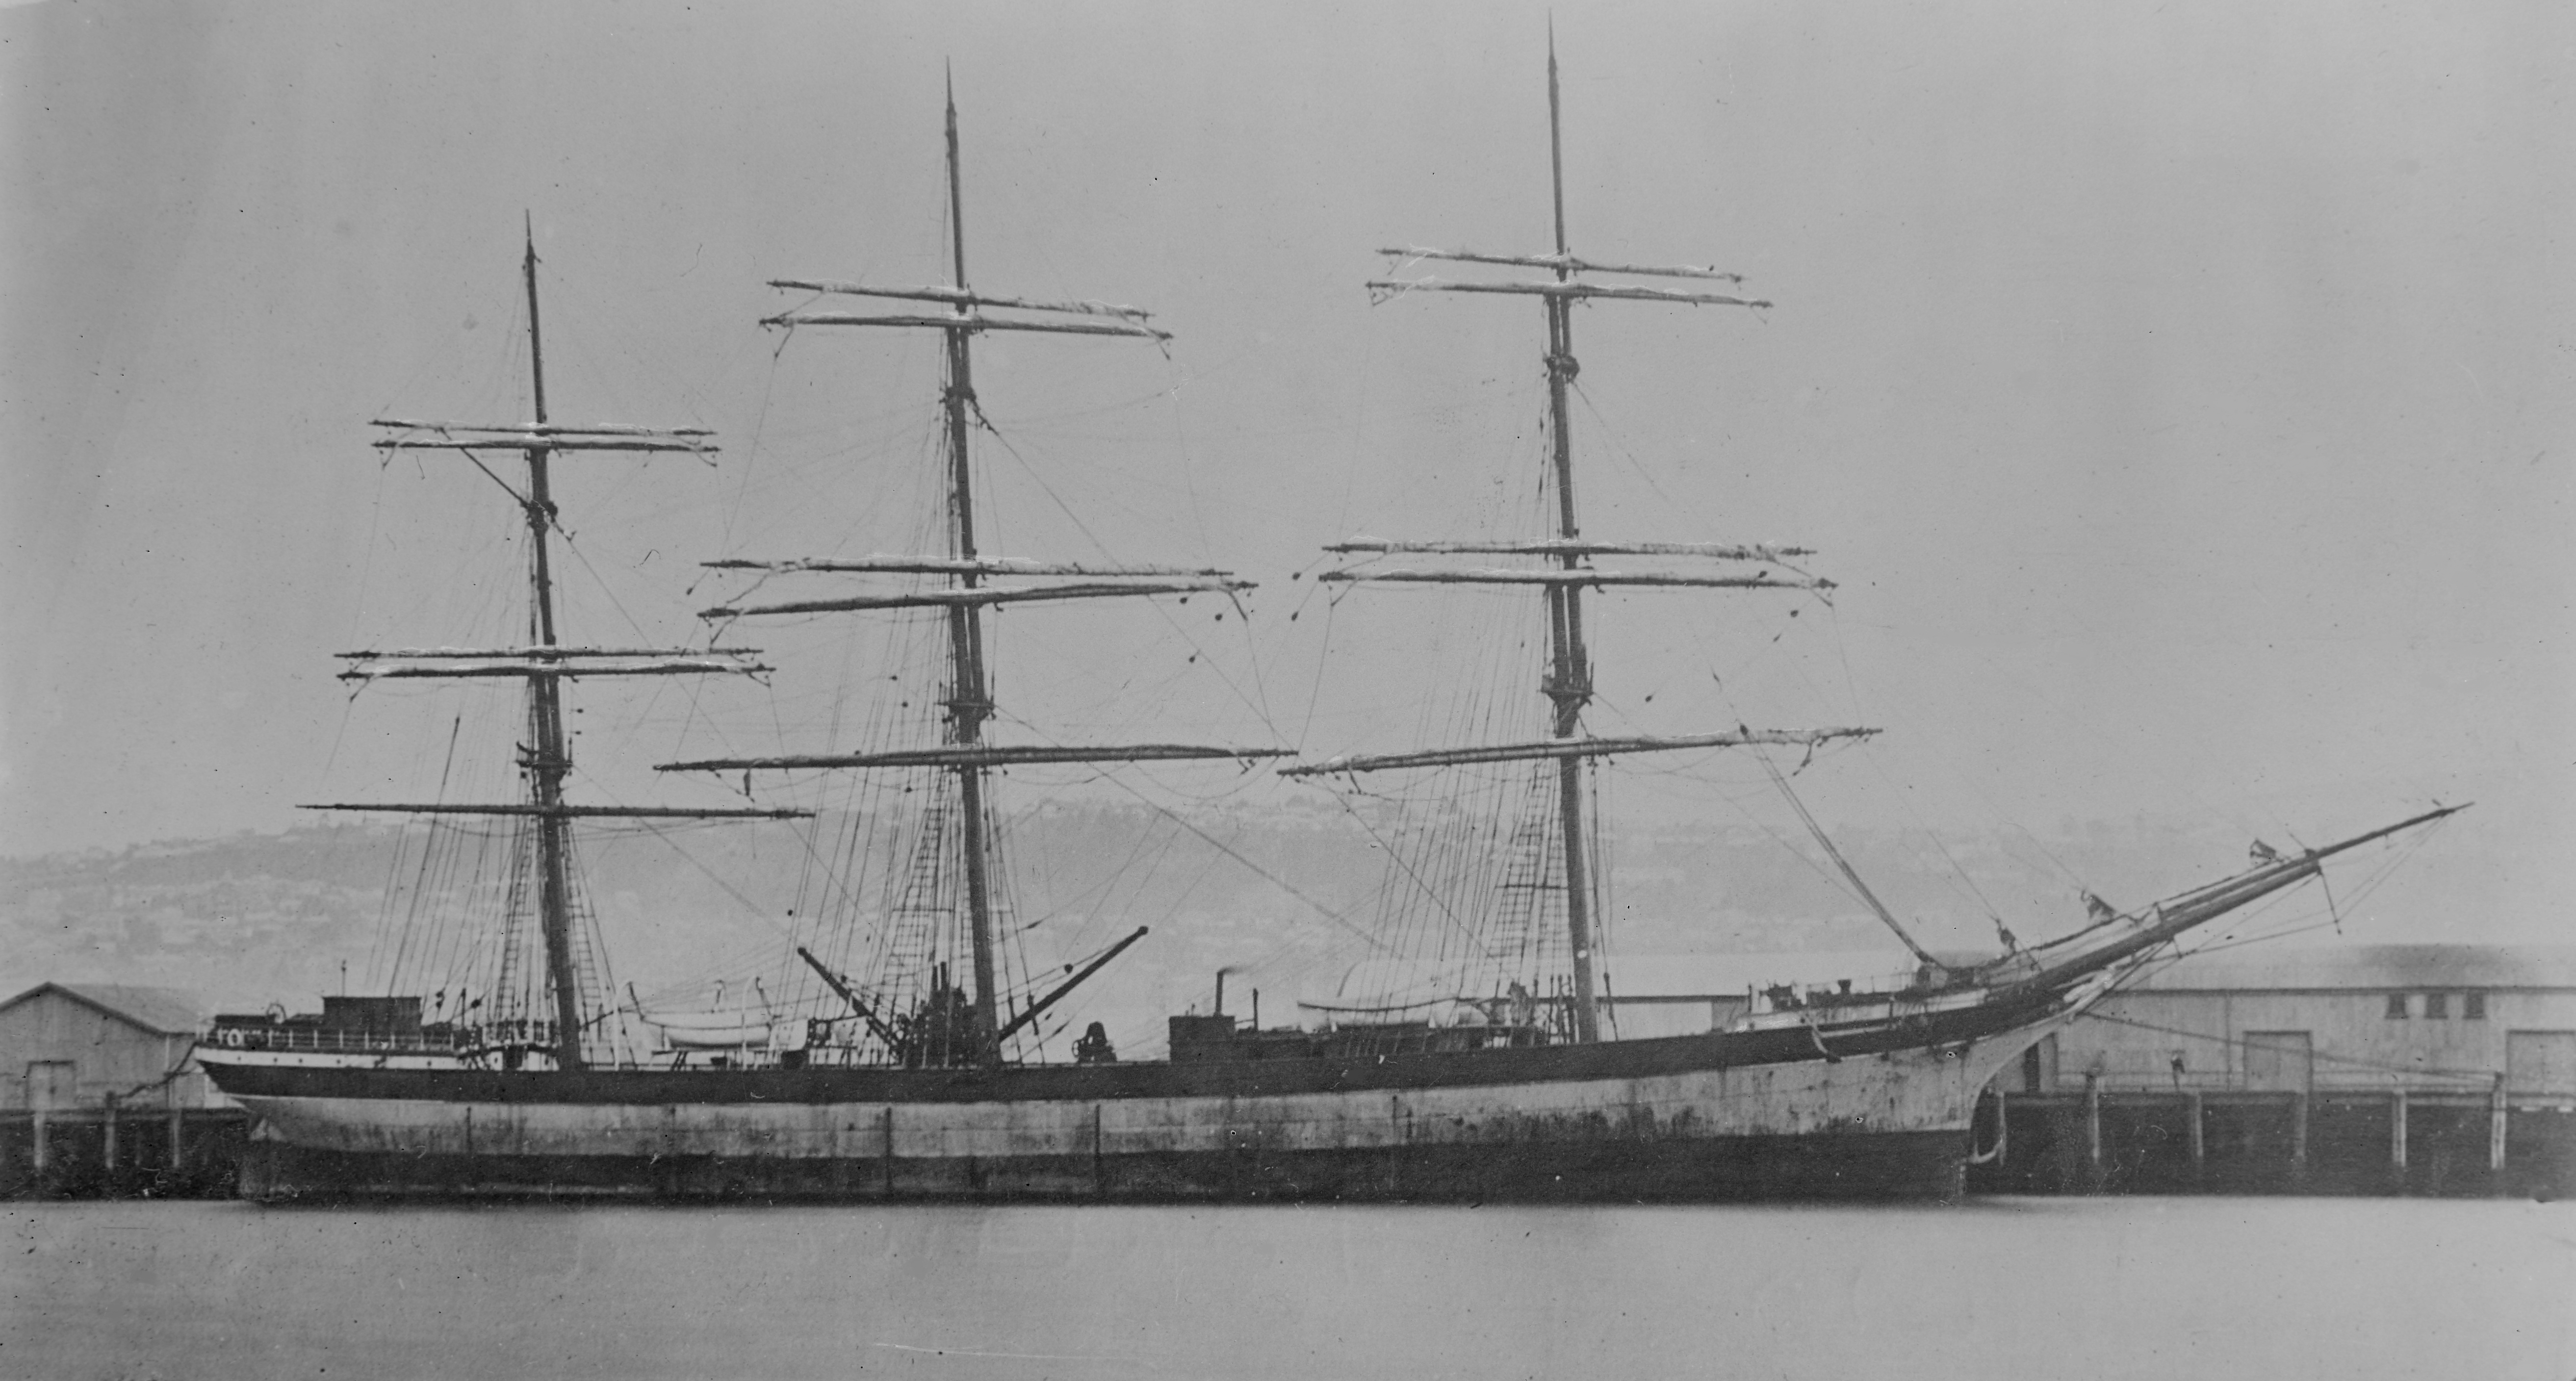 File:Pass of Balmaha (ship, 1888) - SLV H91 250-281 jpg